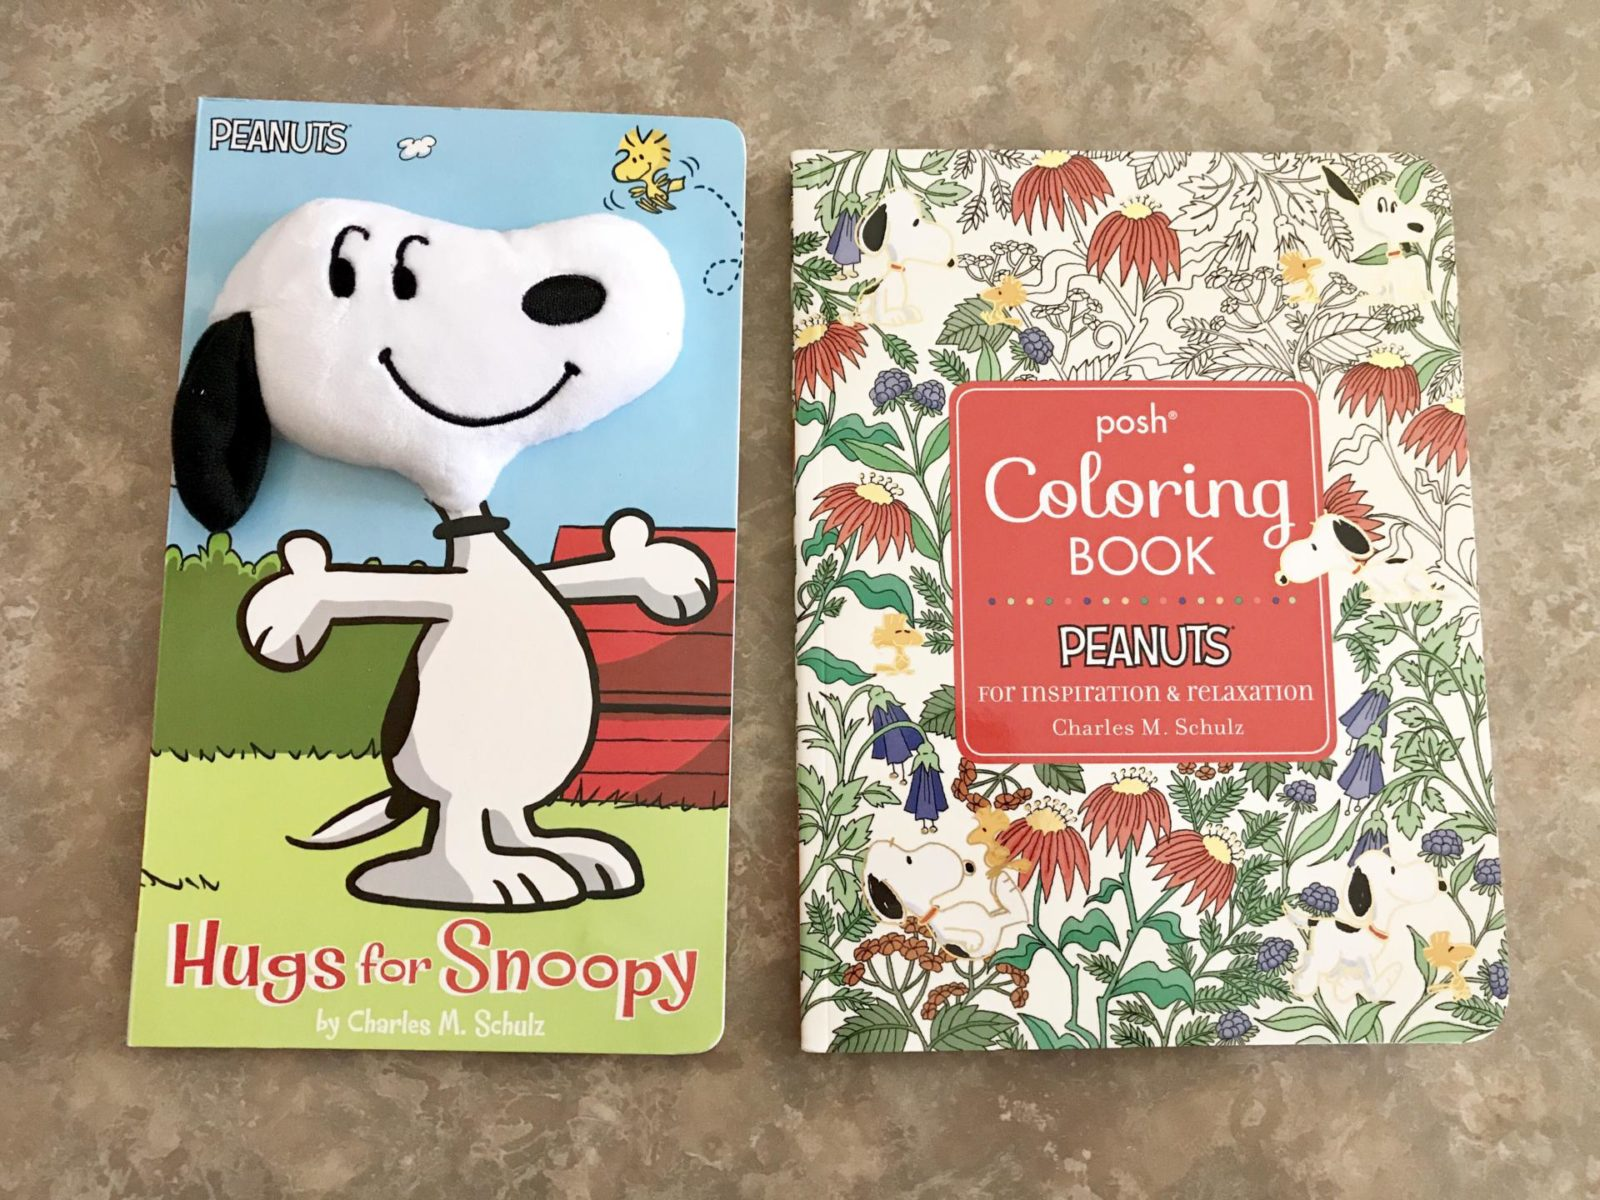 Fun Findings Friday #187 + Peanuts Book Giveaway!